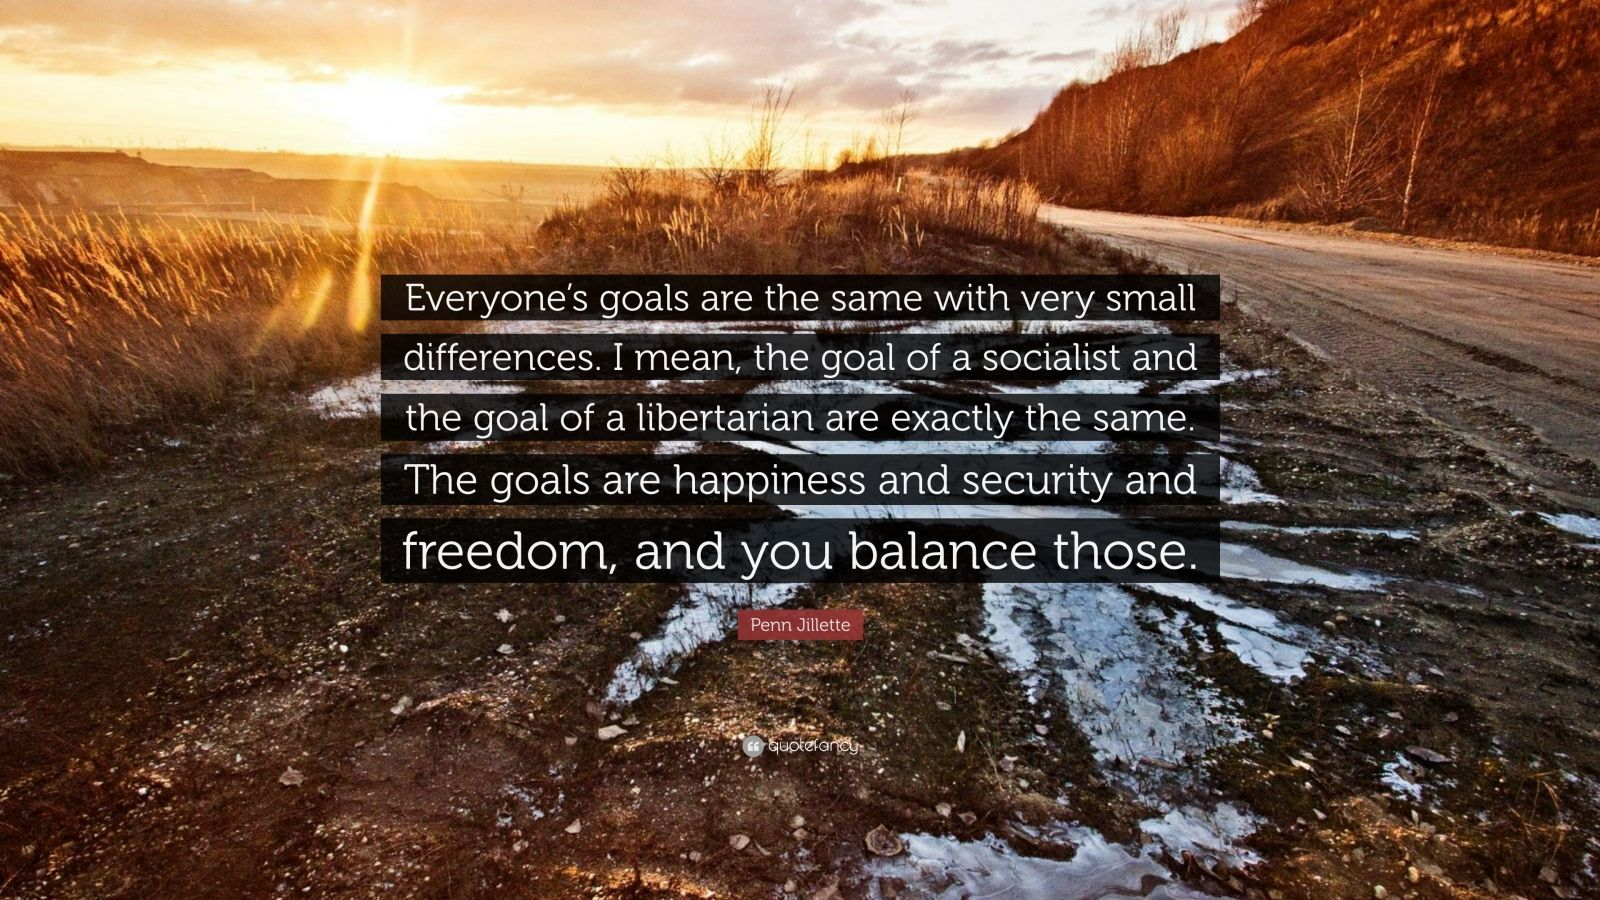 """Penn Jillette Quote: """"Everyone's goals are the same with very small differences. I mean, the goal of a socialist and the goal of a libertarian are exactly the same. The goals are happiness and security and freedom, and you balance those."""""""